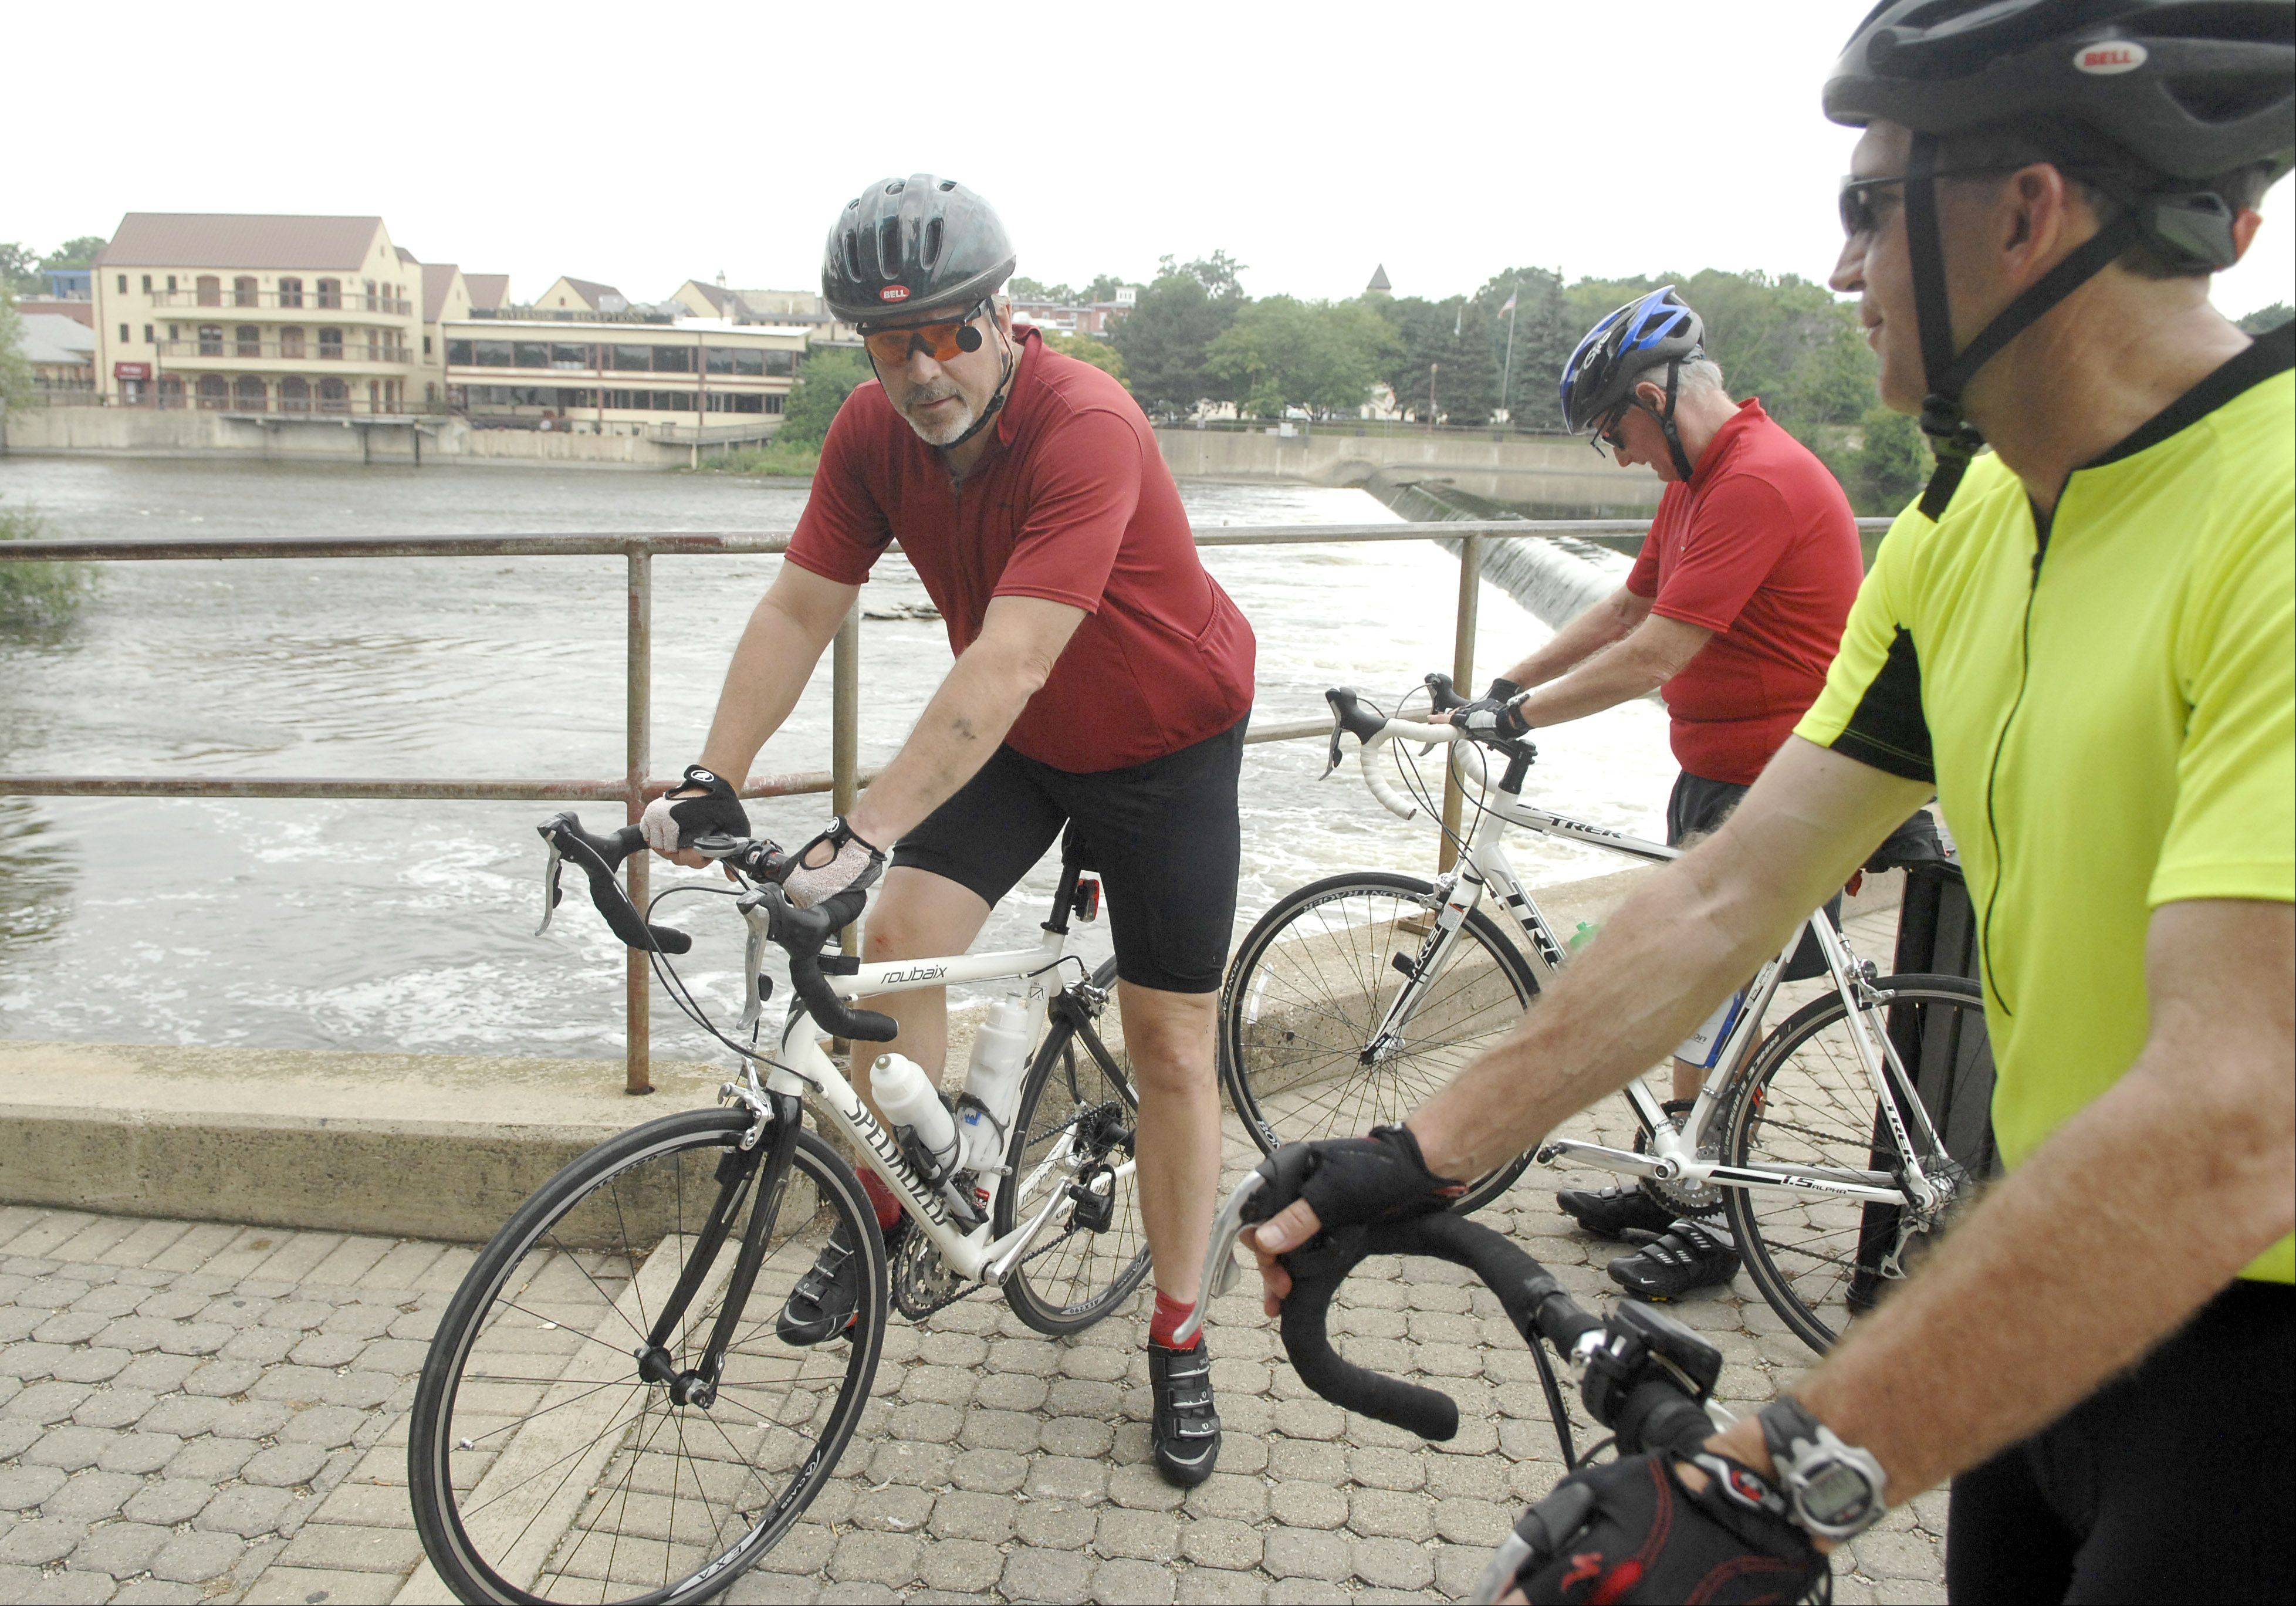 The Rev. Clint Roberts, left, and Brian Beaird, far right, both of Naperville, were two of the bicyclists involved in helping Friday in a Fox River rescue at the Geneva dam.